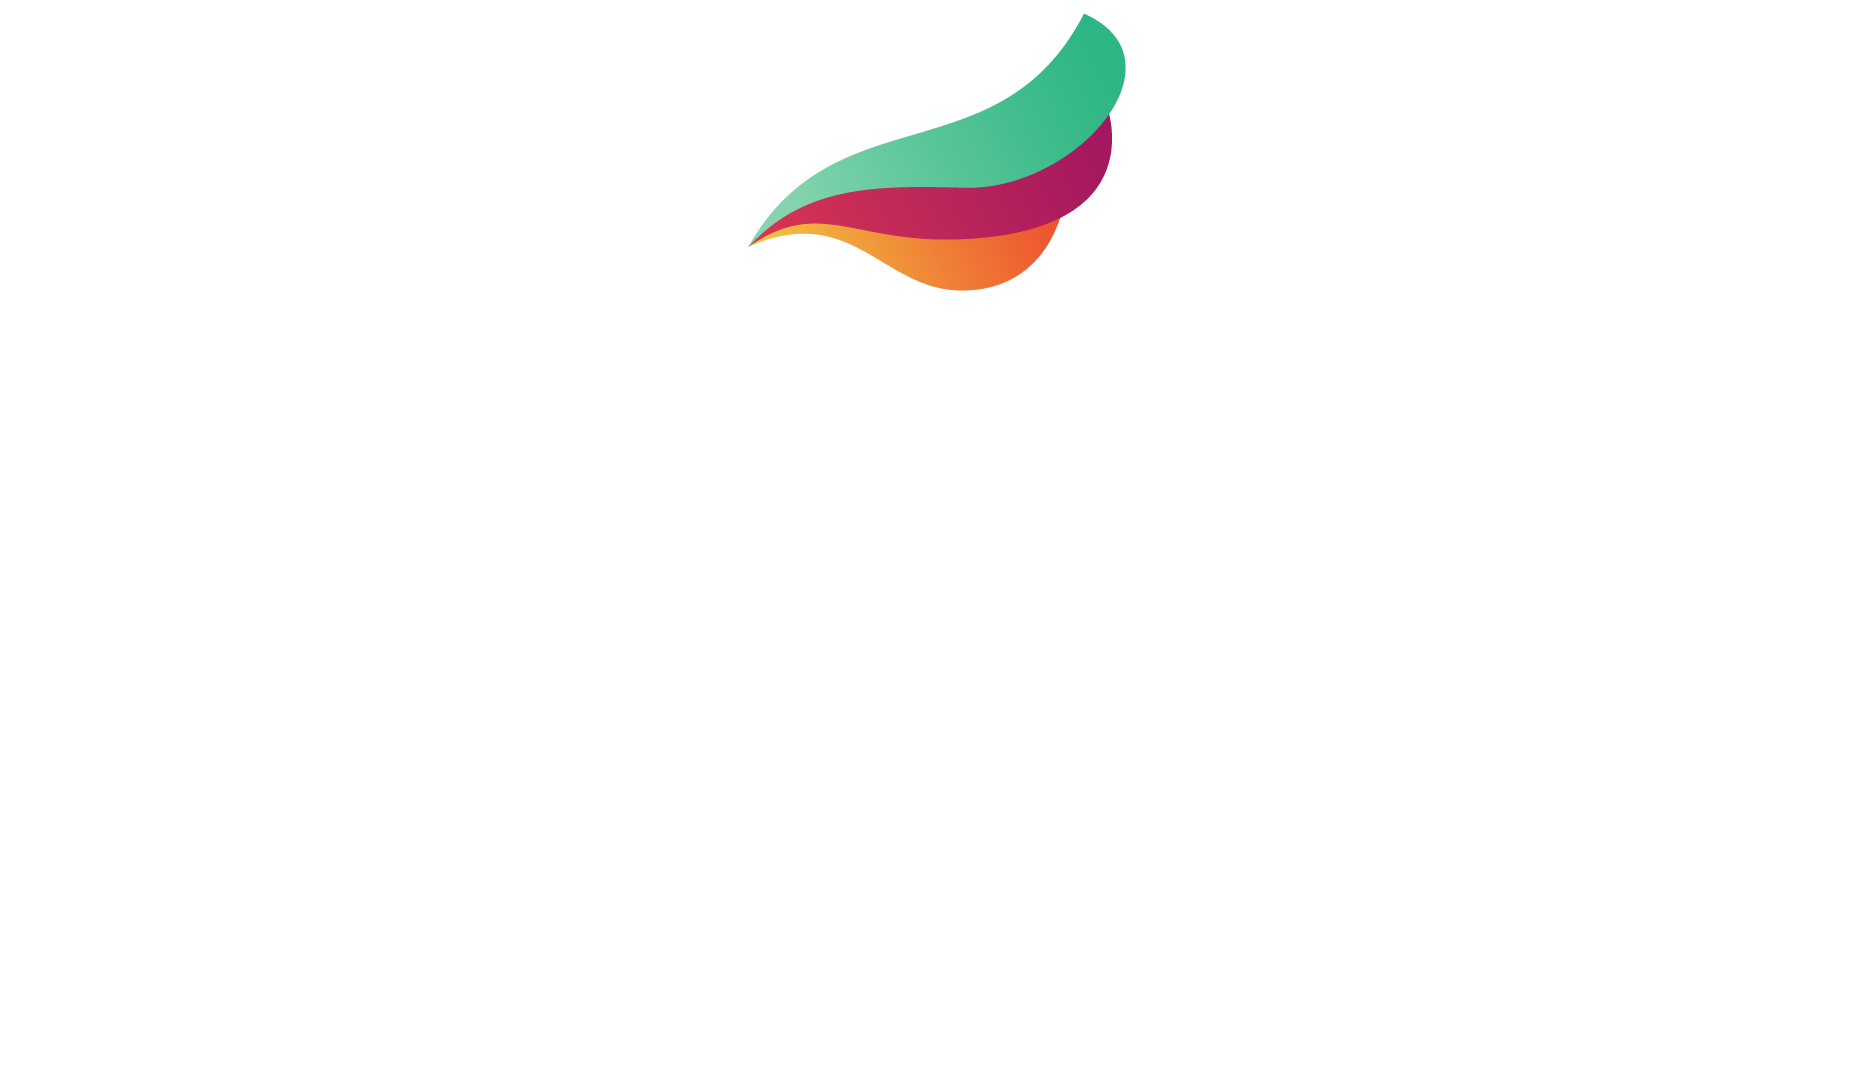 C. Albrecht Window Film Shop